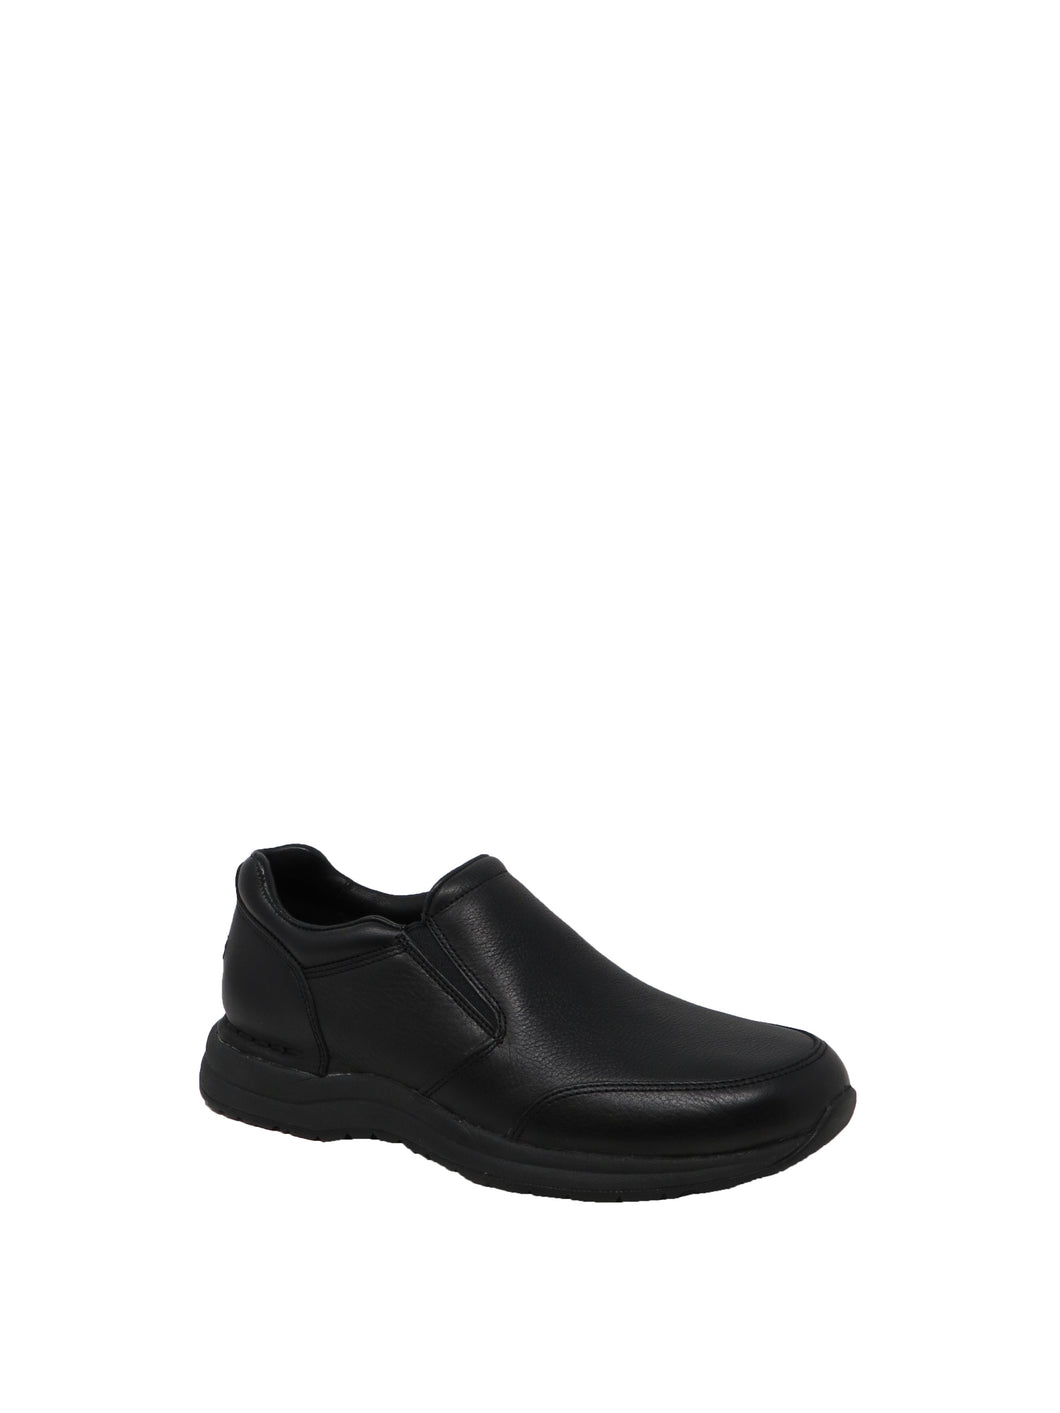 Rockport | CH5181 | Edge Hill II Double Gore | Black